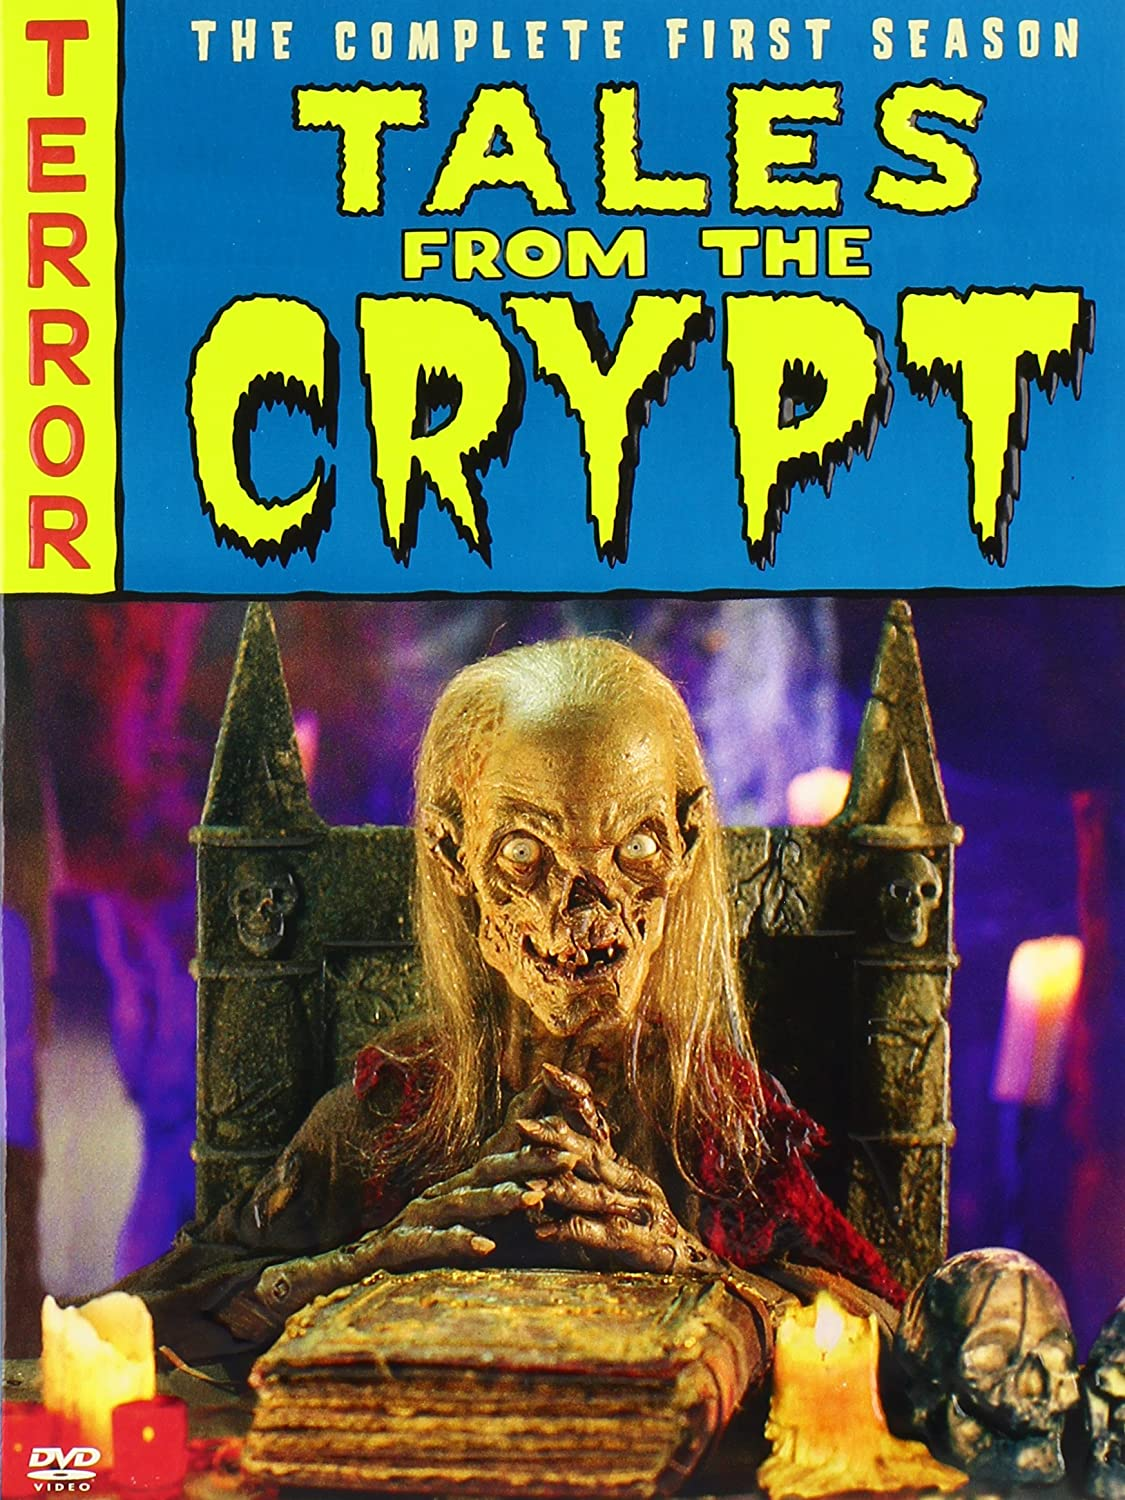 Tales from the Crypt: The Complete First Season John Kassir William Sadler J.W. Smith Roy Brocksmith